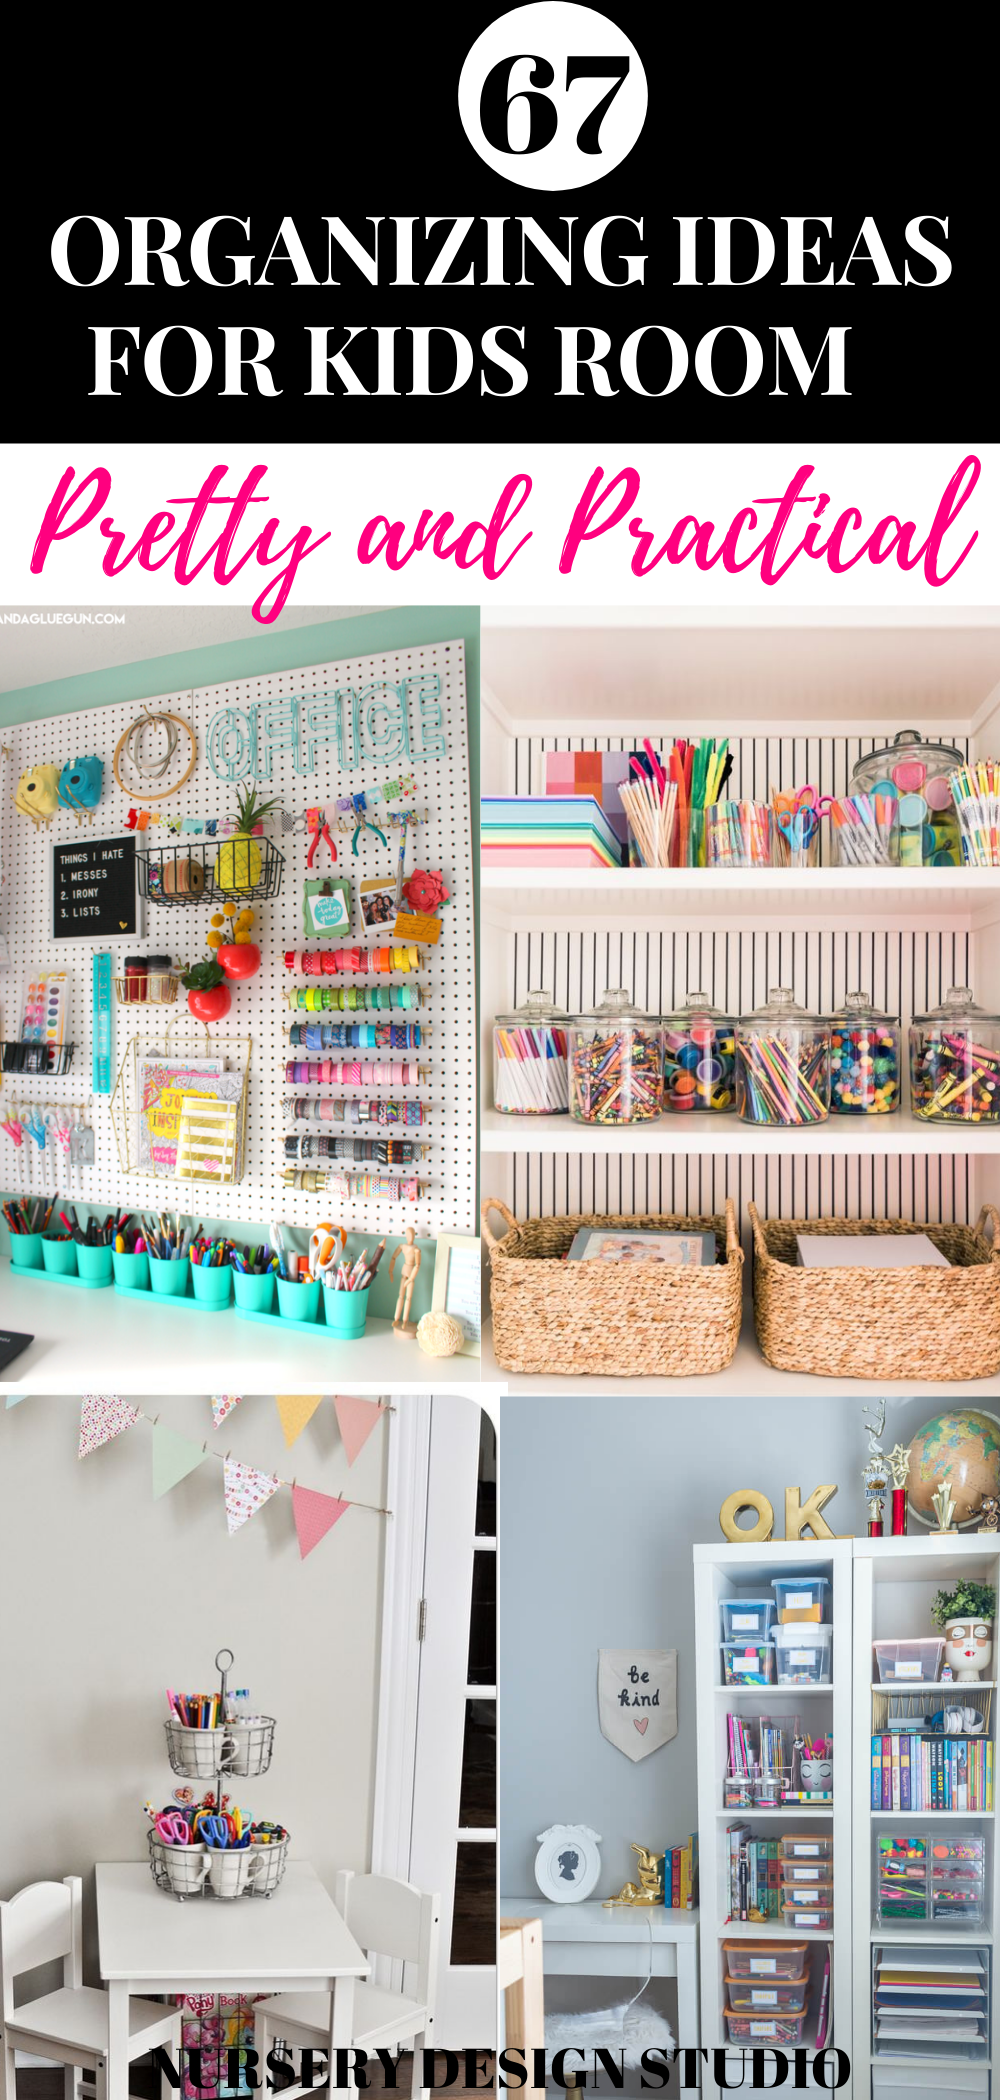 67 ORGANIZING IDEAS FOR KIDS ROOM (2)